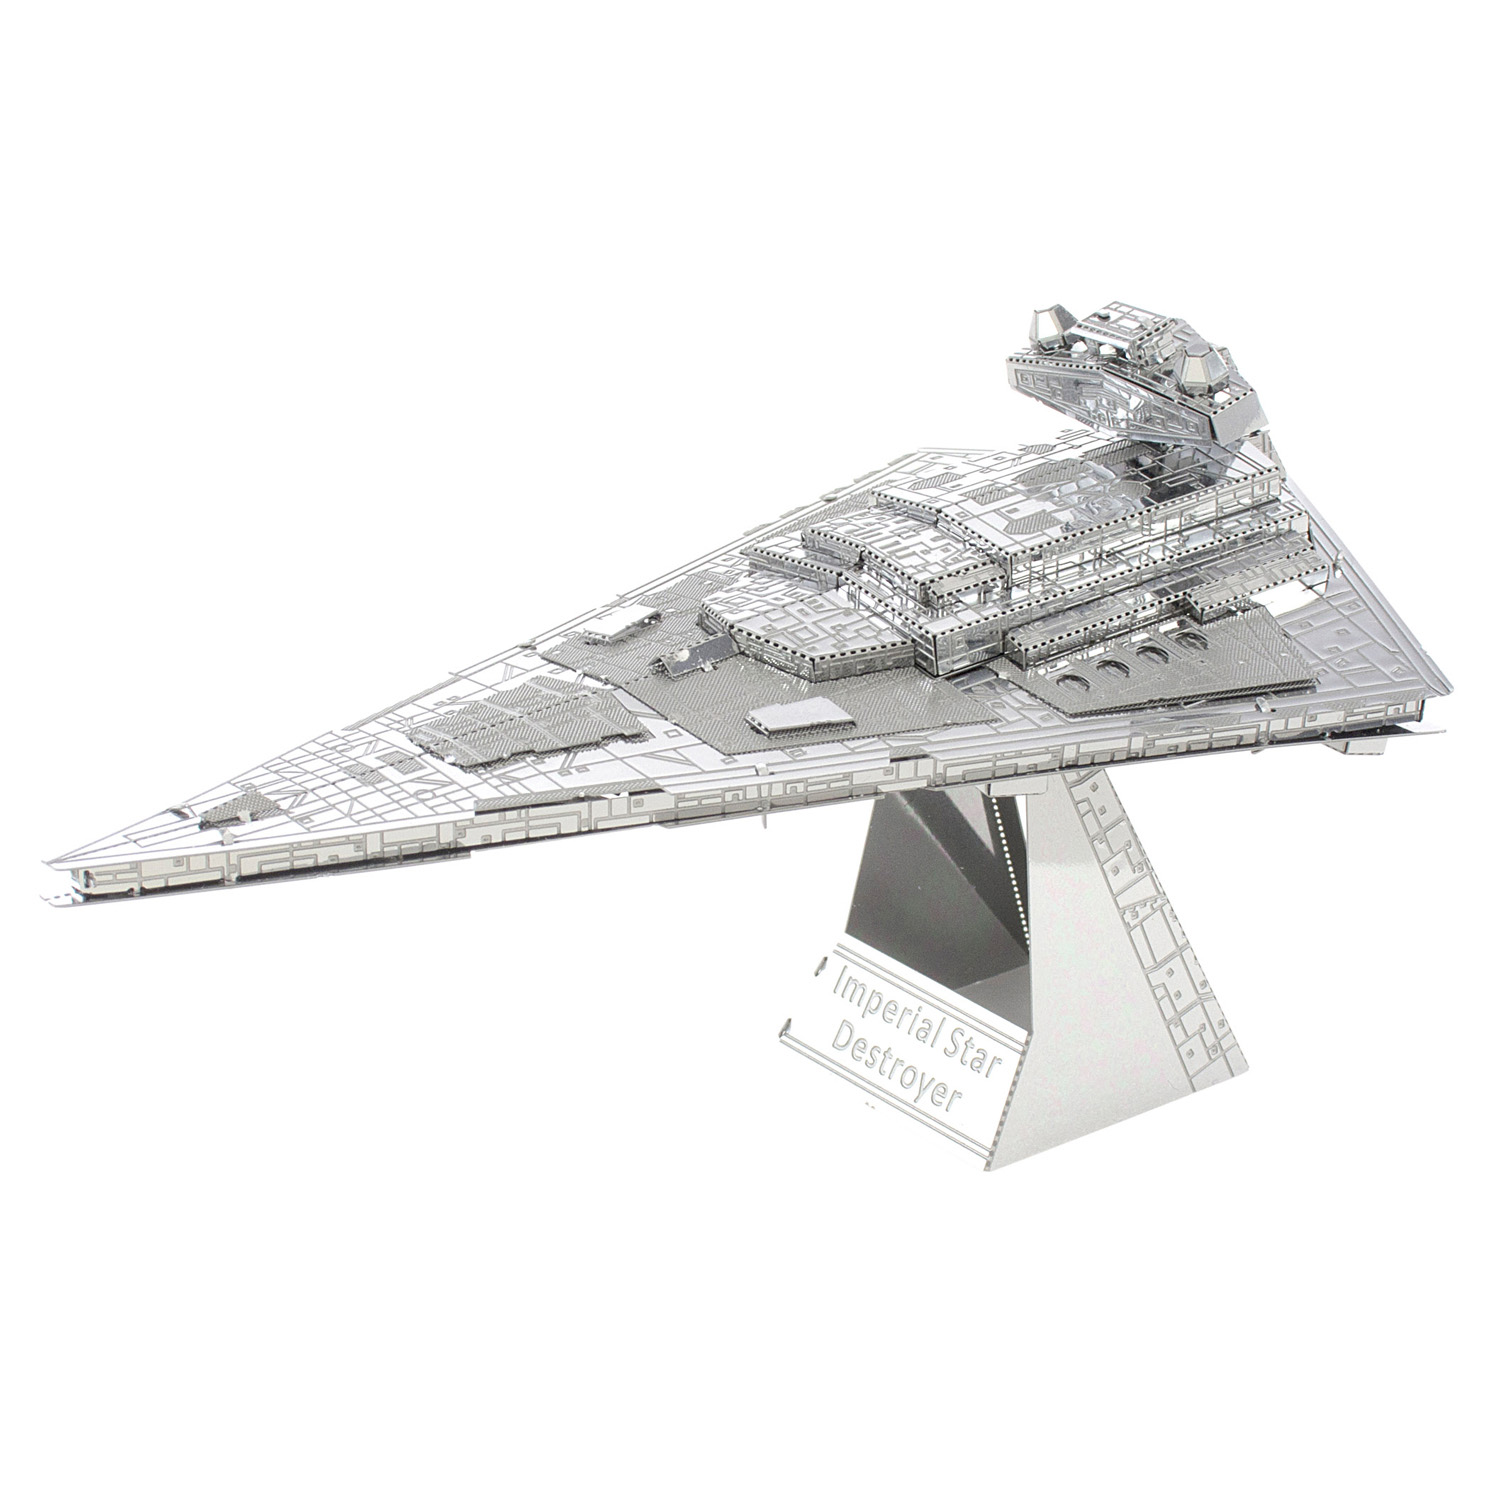 Star Wars Metal Earth 3d Model Kit - Imperial Star Destroyer (mms254)